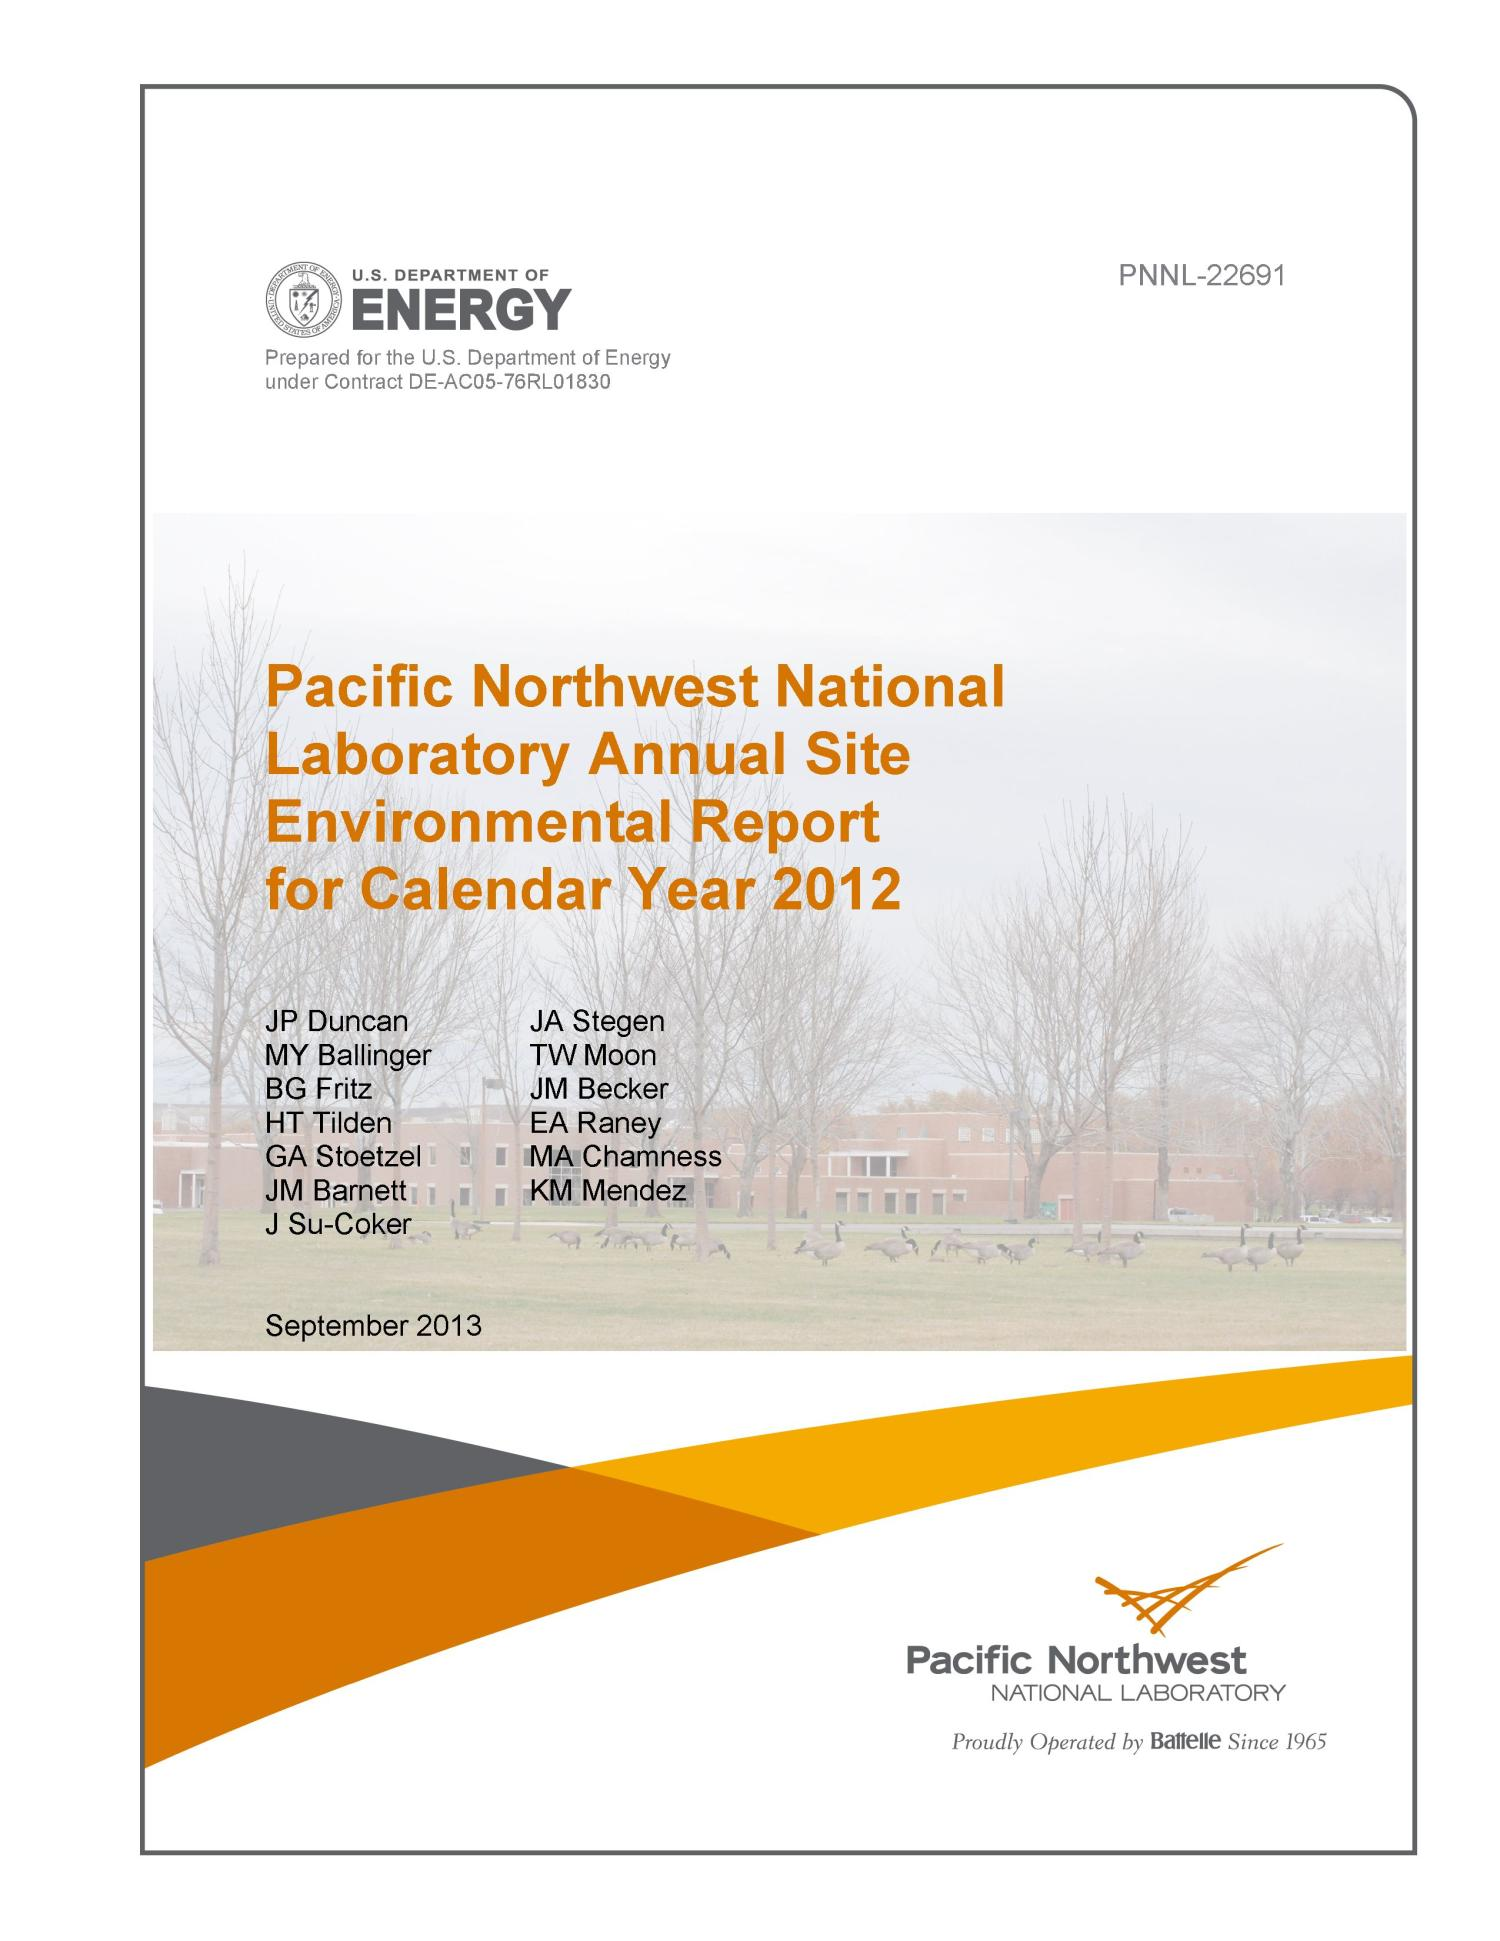 Pacific Northwest National Laboratory Annual Site Environmental Report for Calendar Year 2012                                                                                                      [Sequence #]: 1 of 154